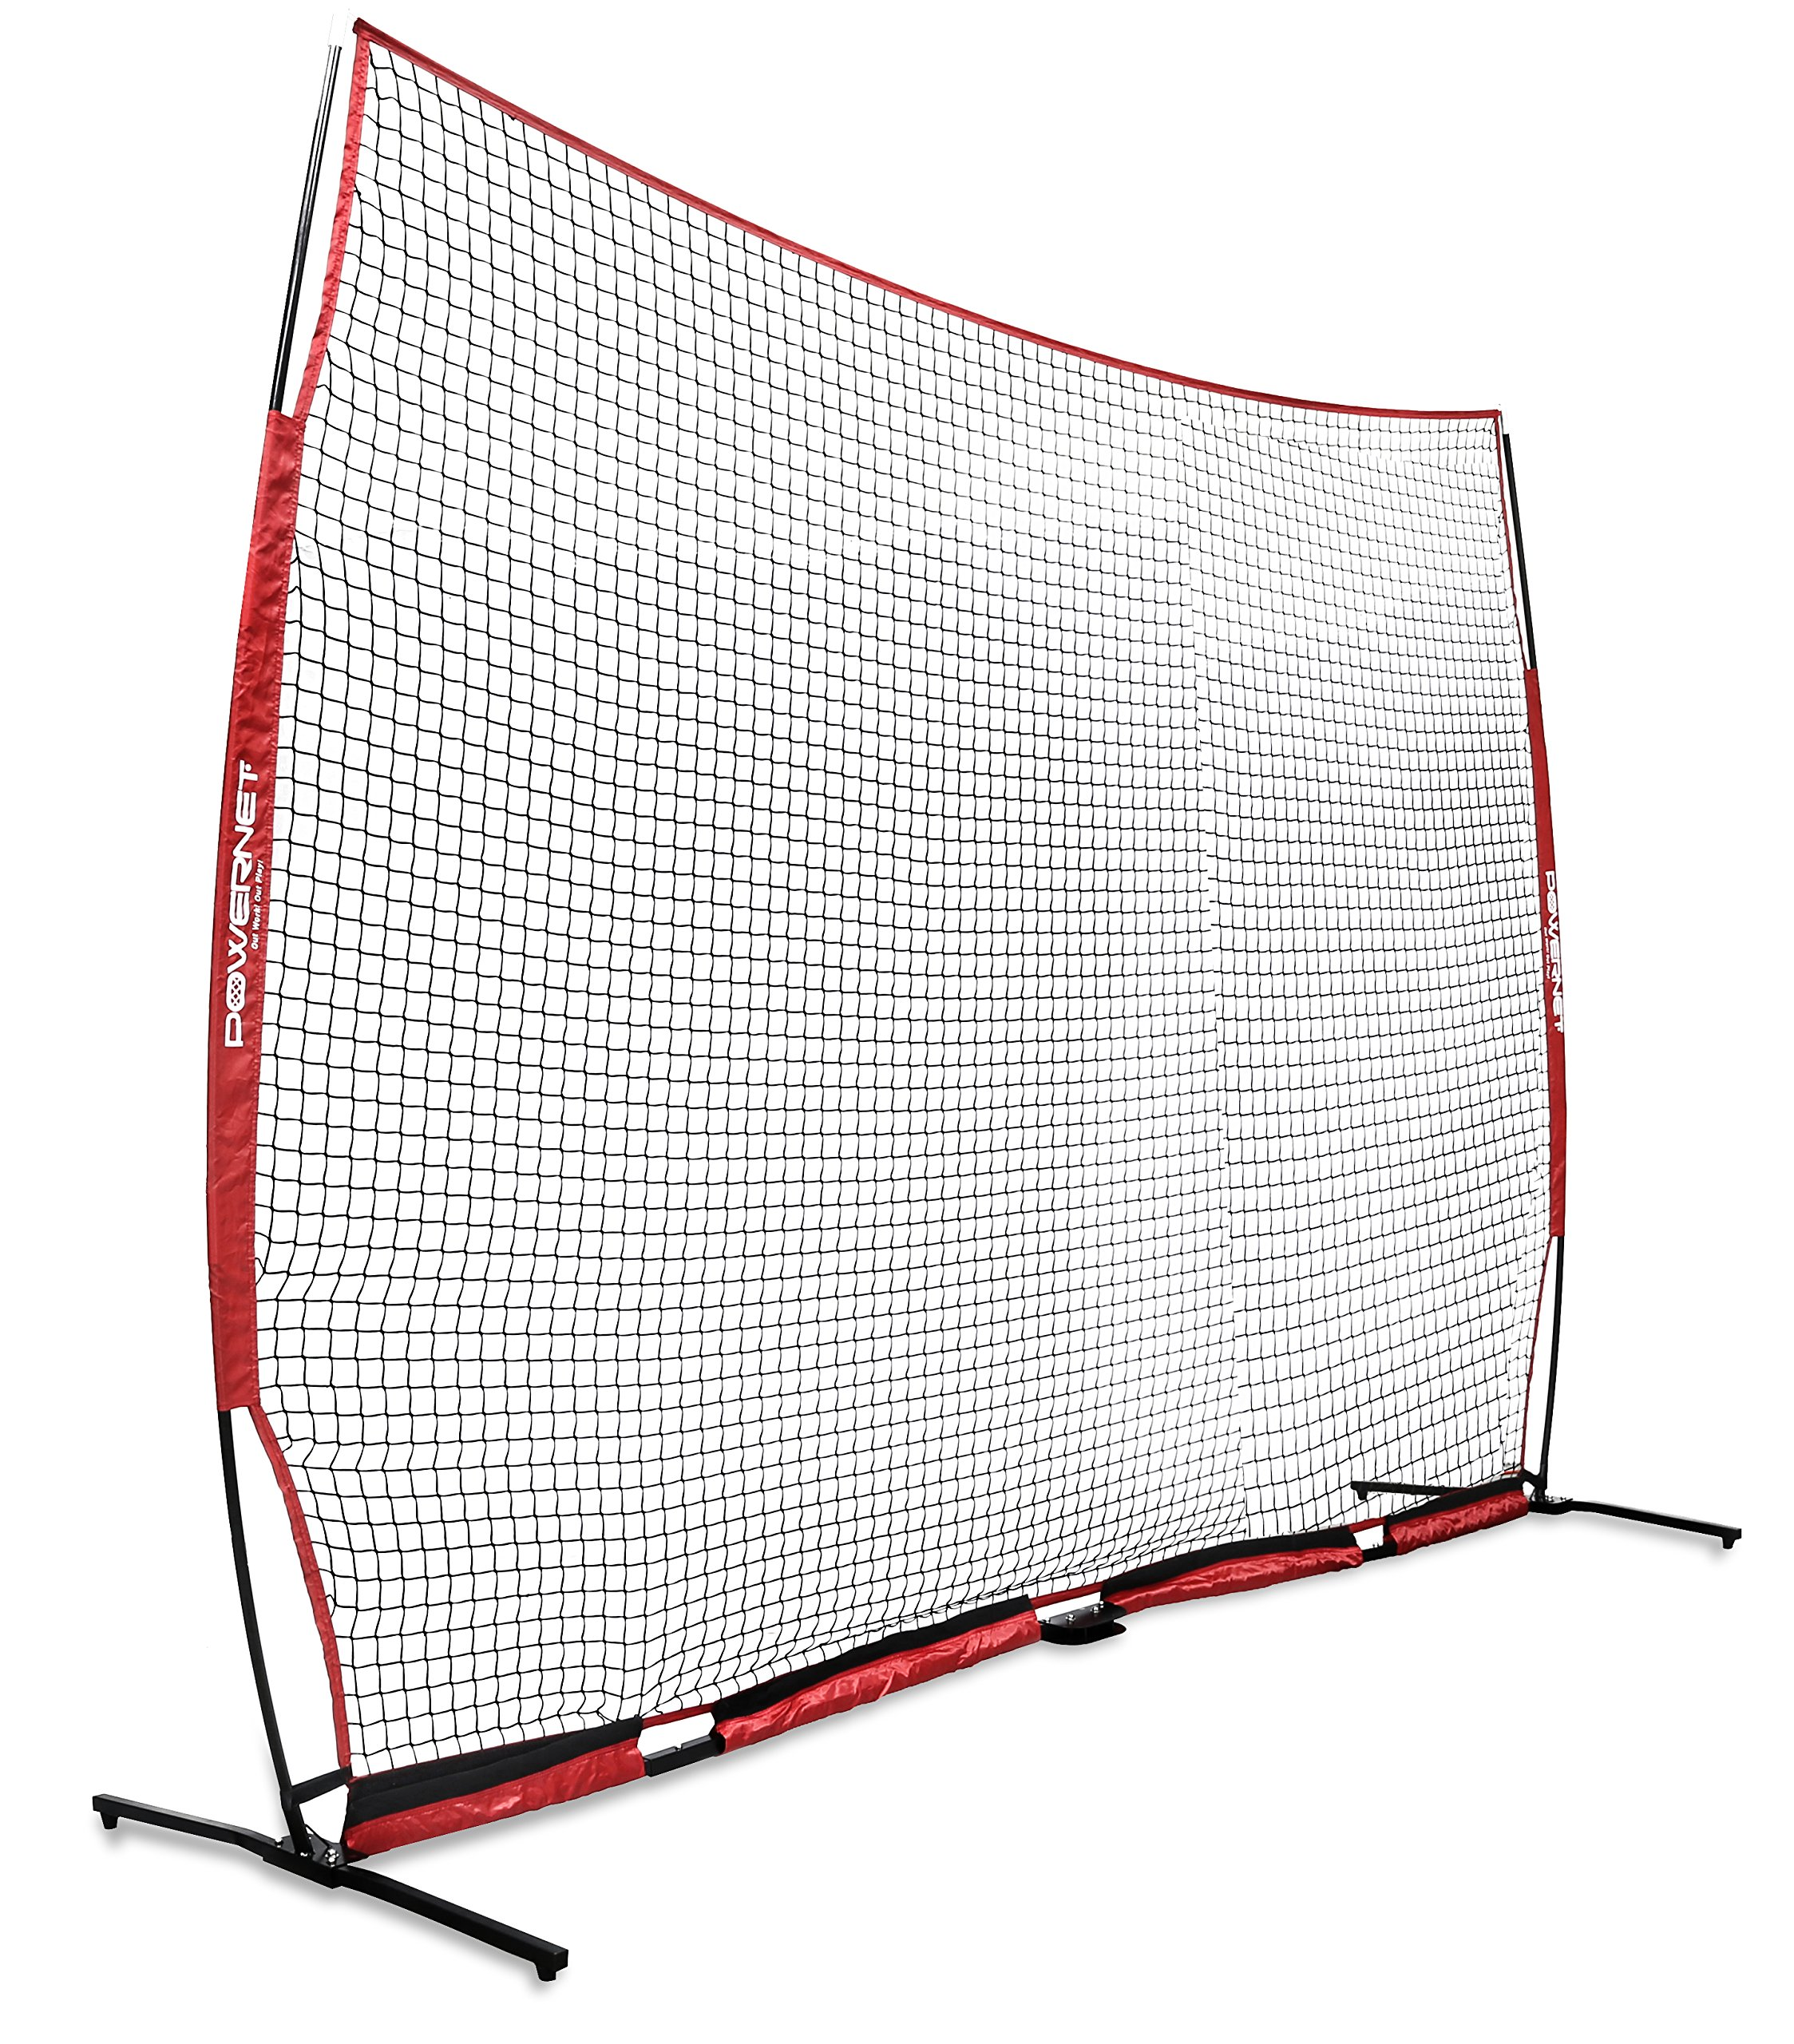 PowerNet XL Portable Barrier Net 21.5 ft x 11.5 ft